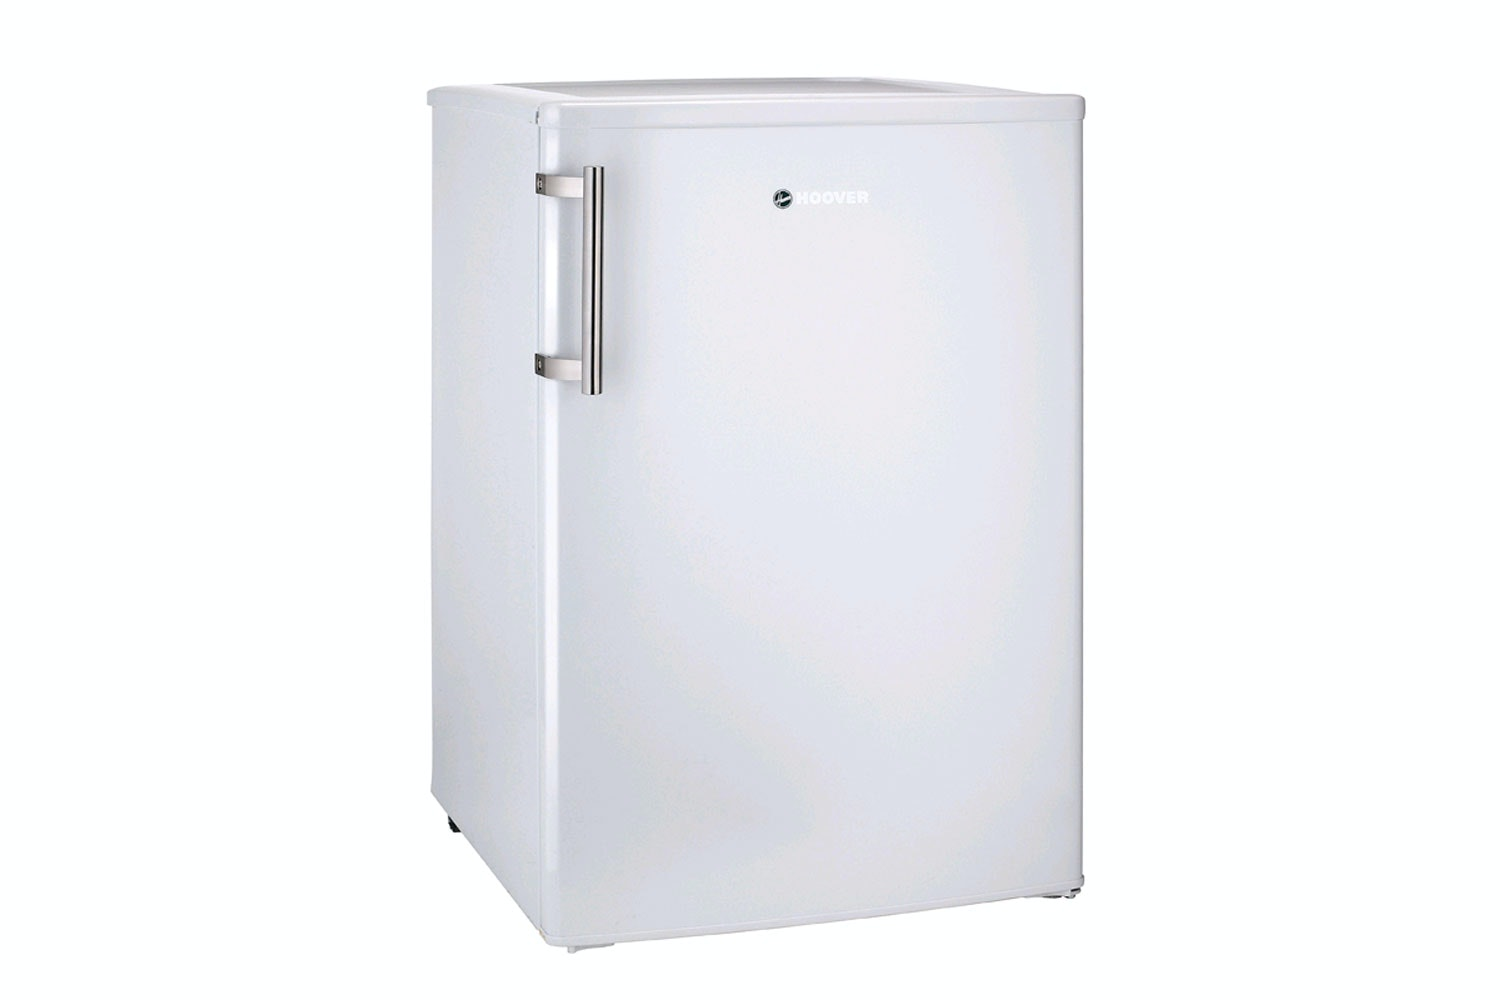 Hoover 55cm Undercounter Fridge with Ice Box | HFOE5485WE